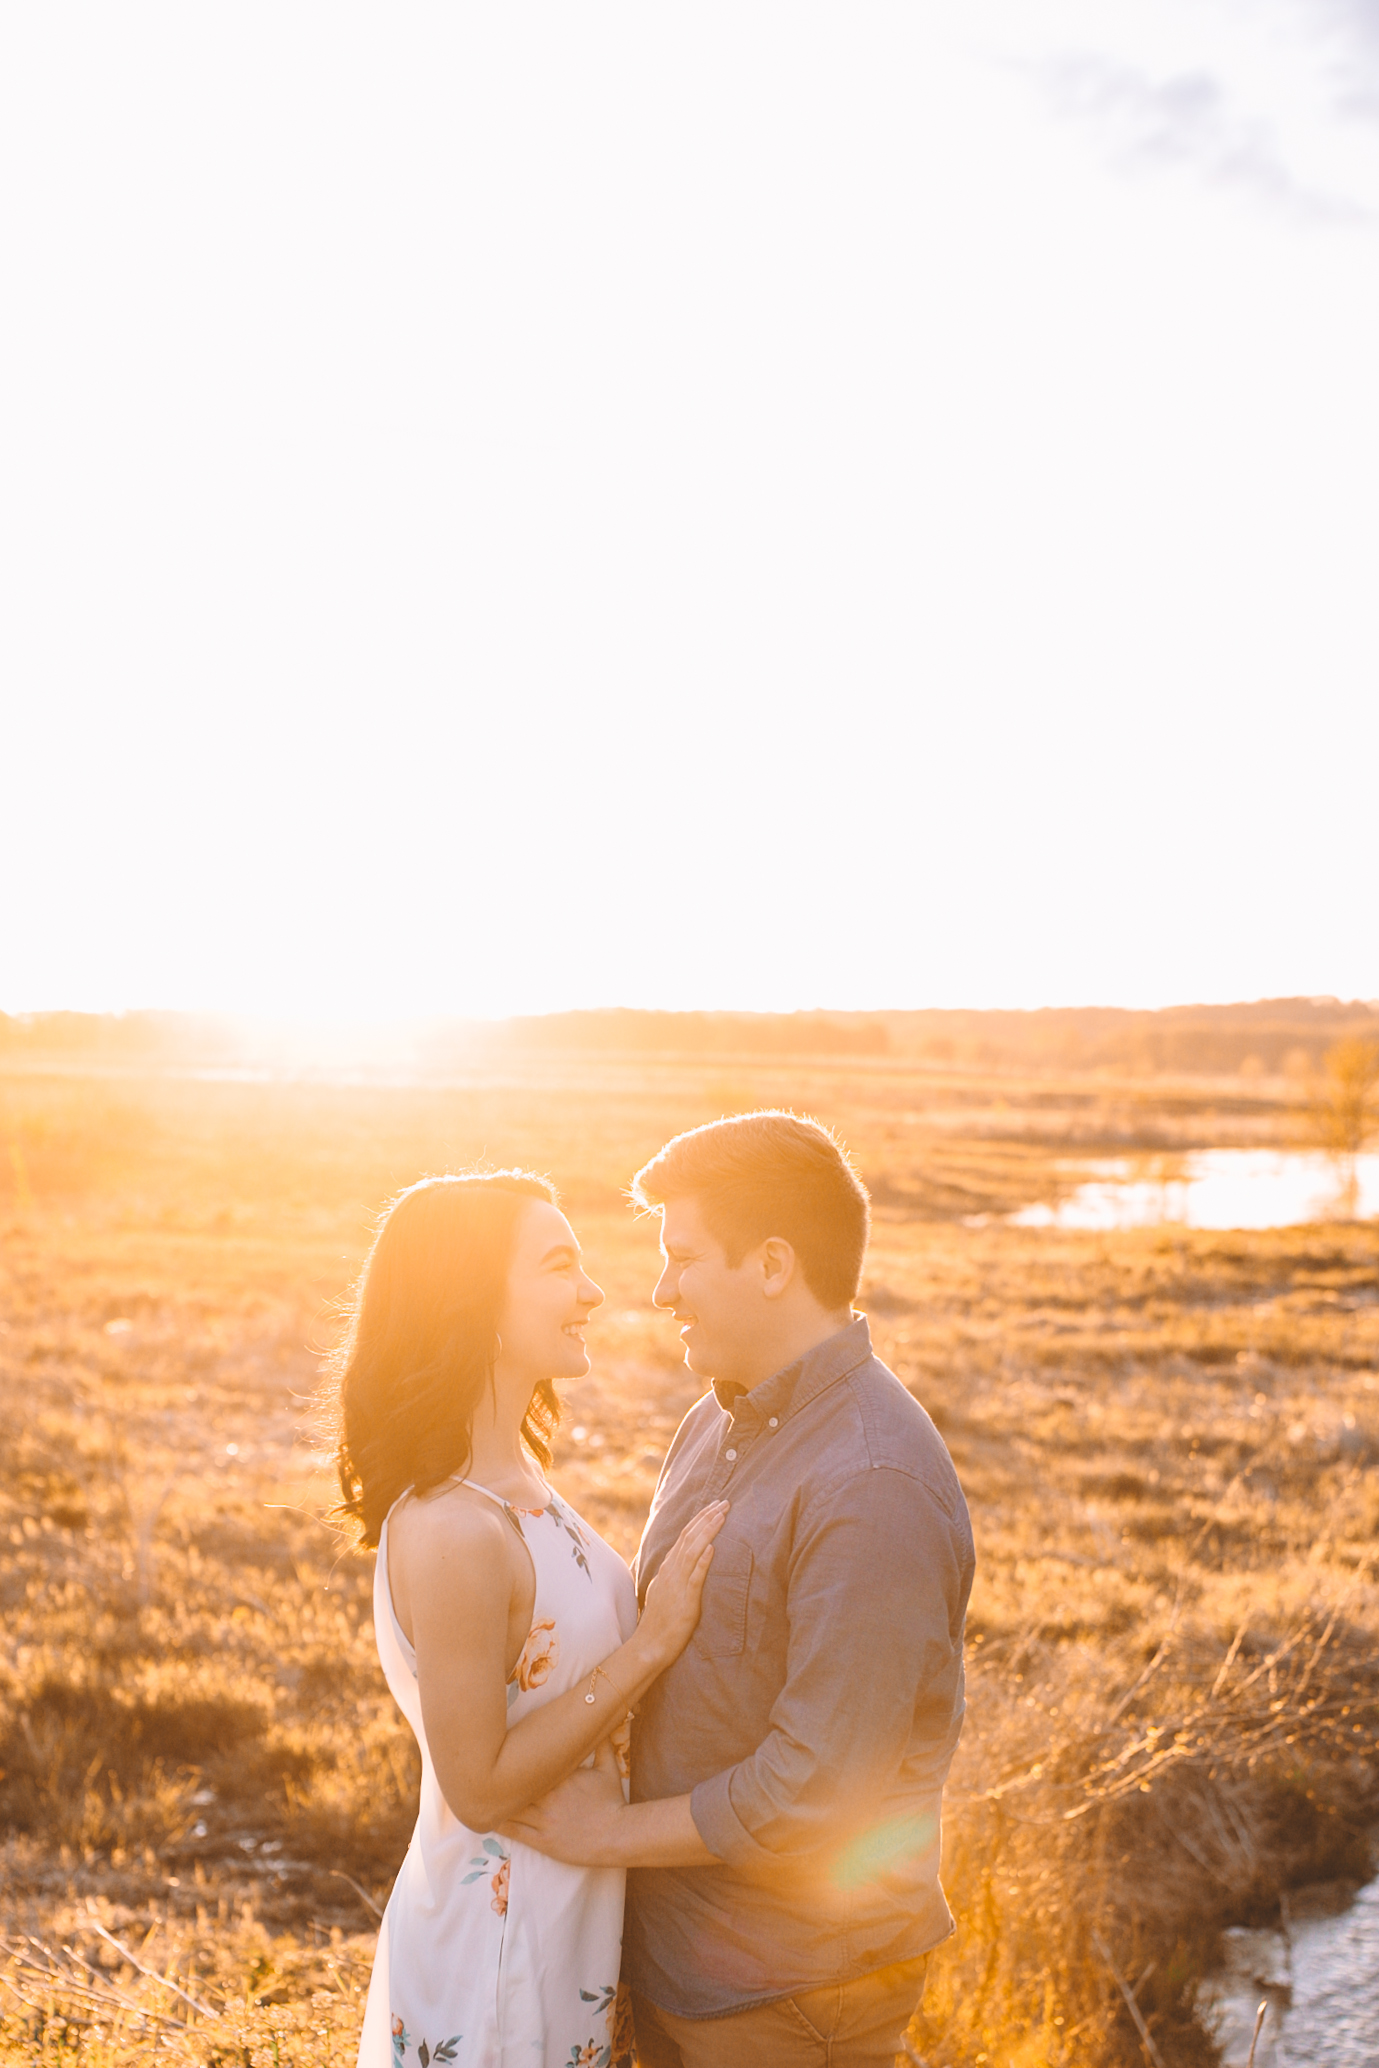 Will + Erin Engagement Photos at Prophetstown State Park  (35 of 183).jpg